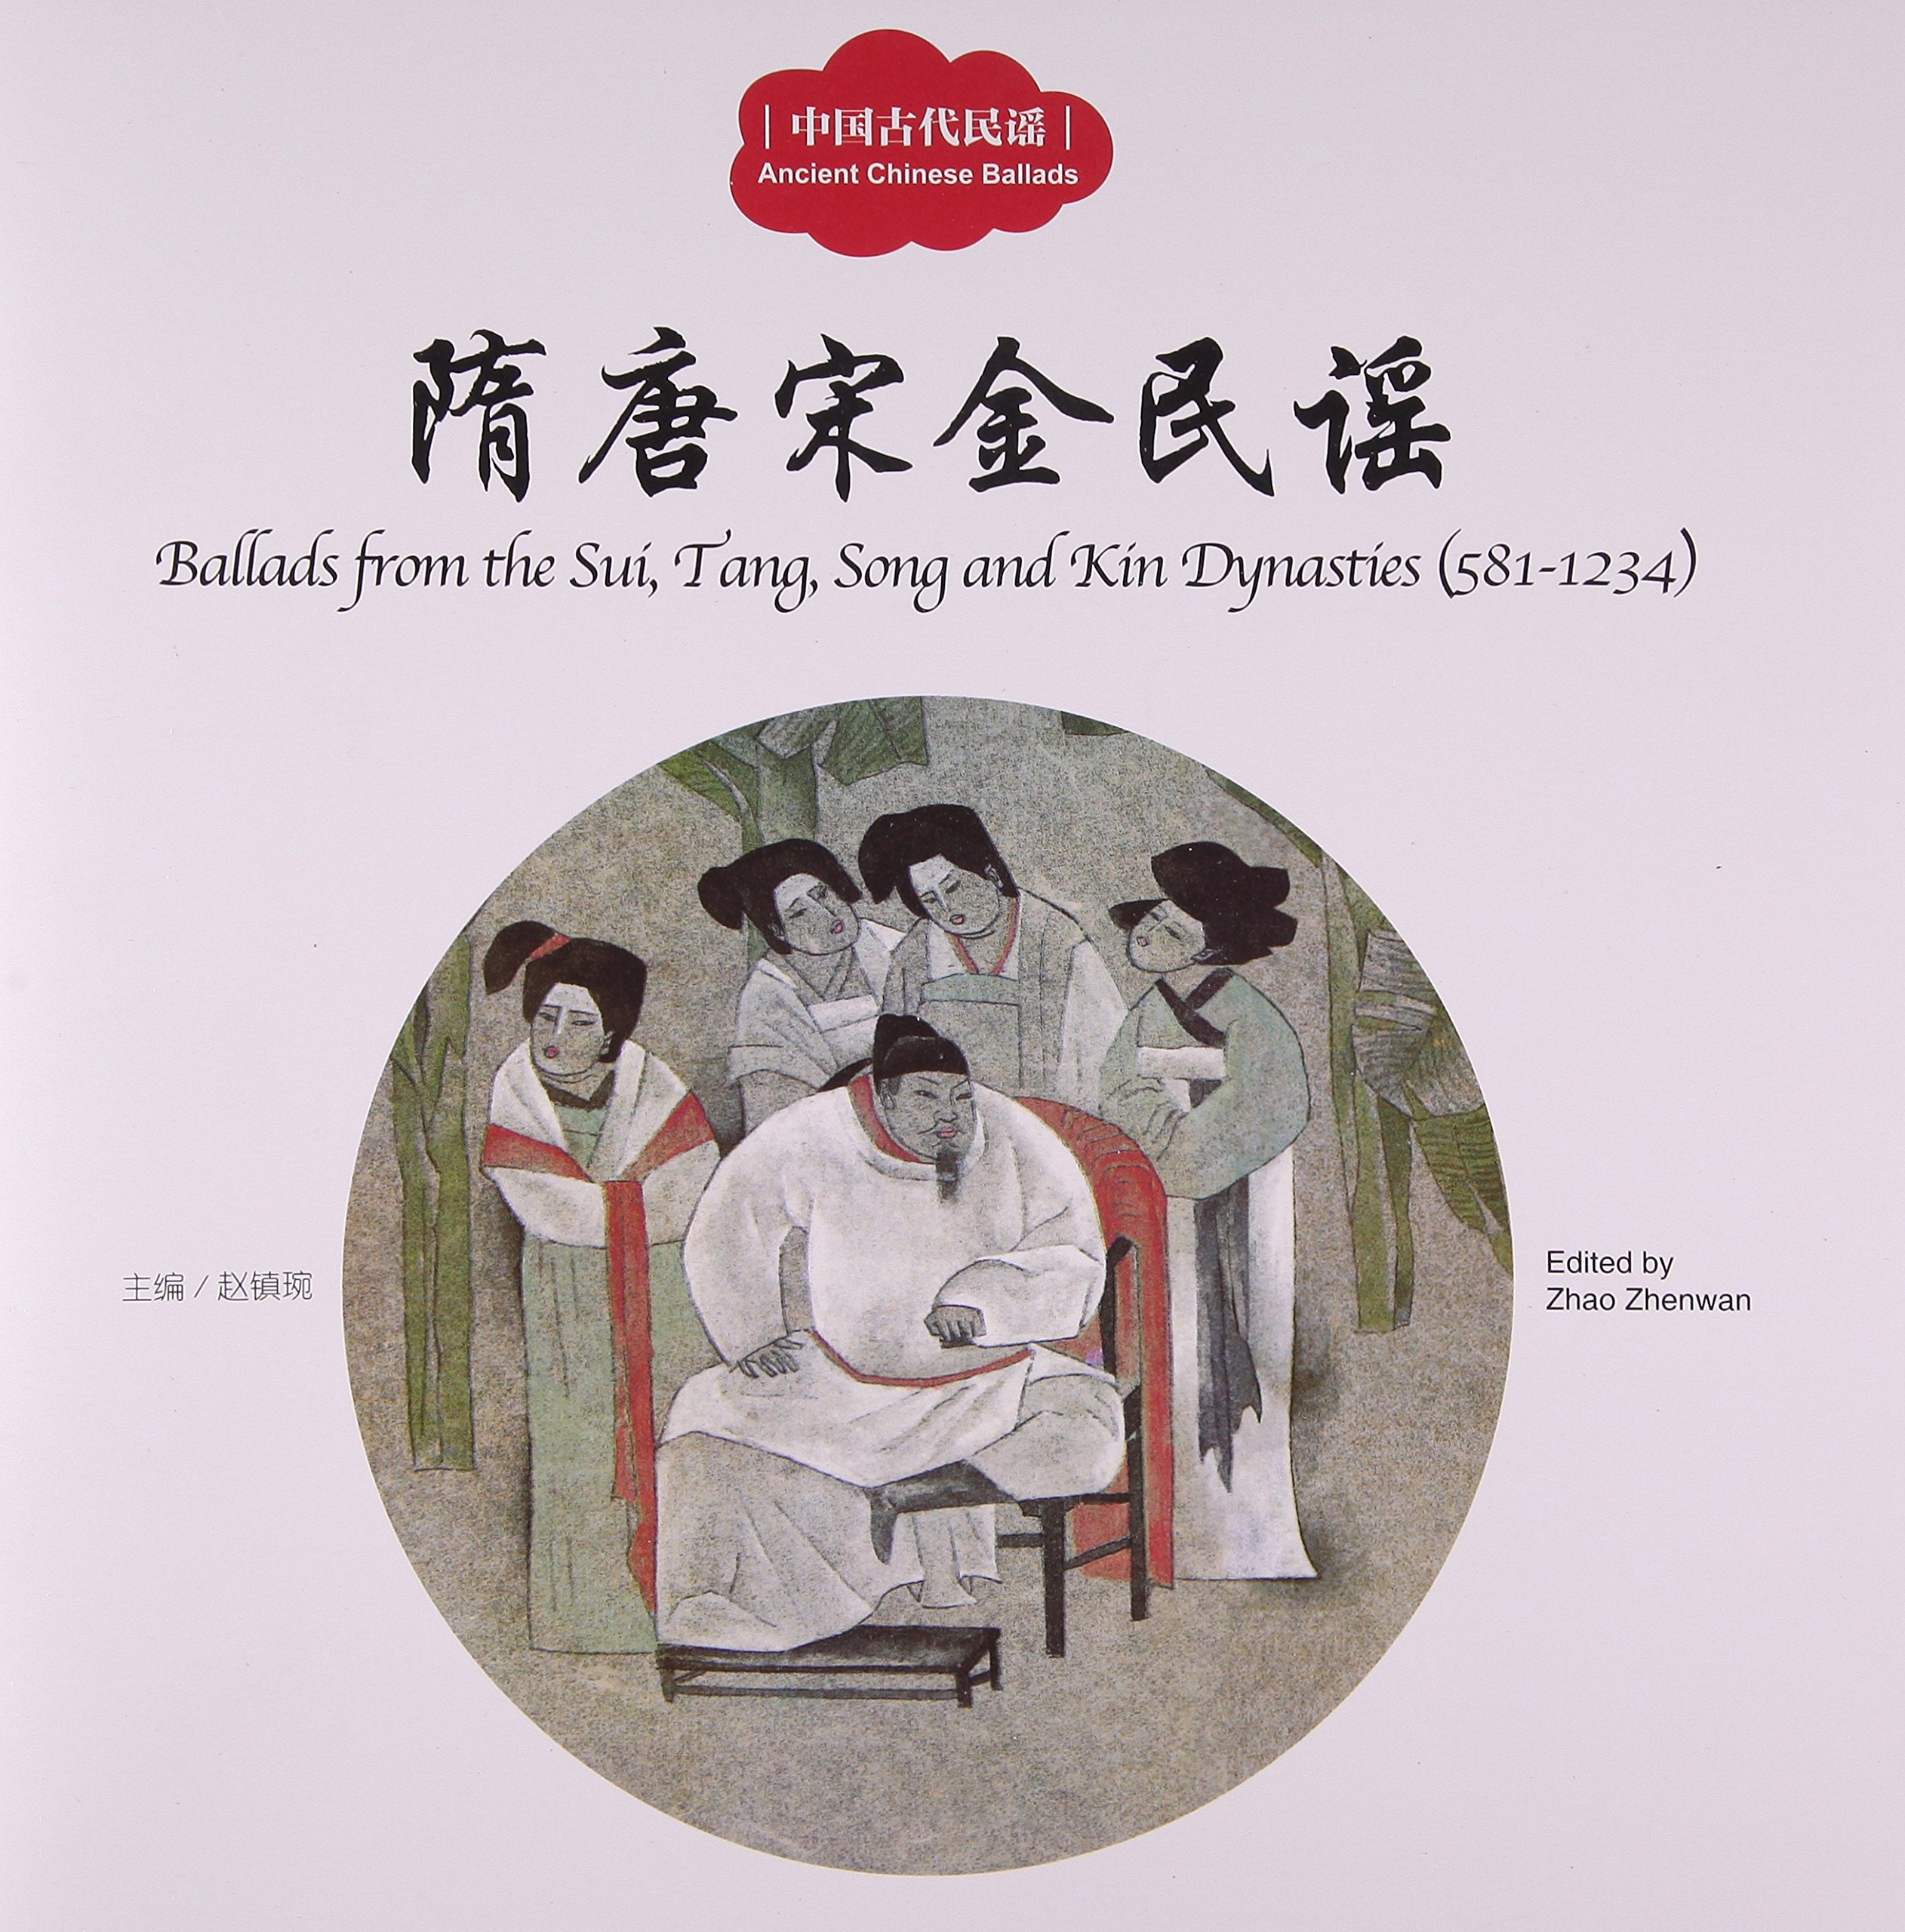 Ballads from the Sui, Tang, Song and Kin Dynasties (581-1234) - First Books for Early Learning Series